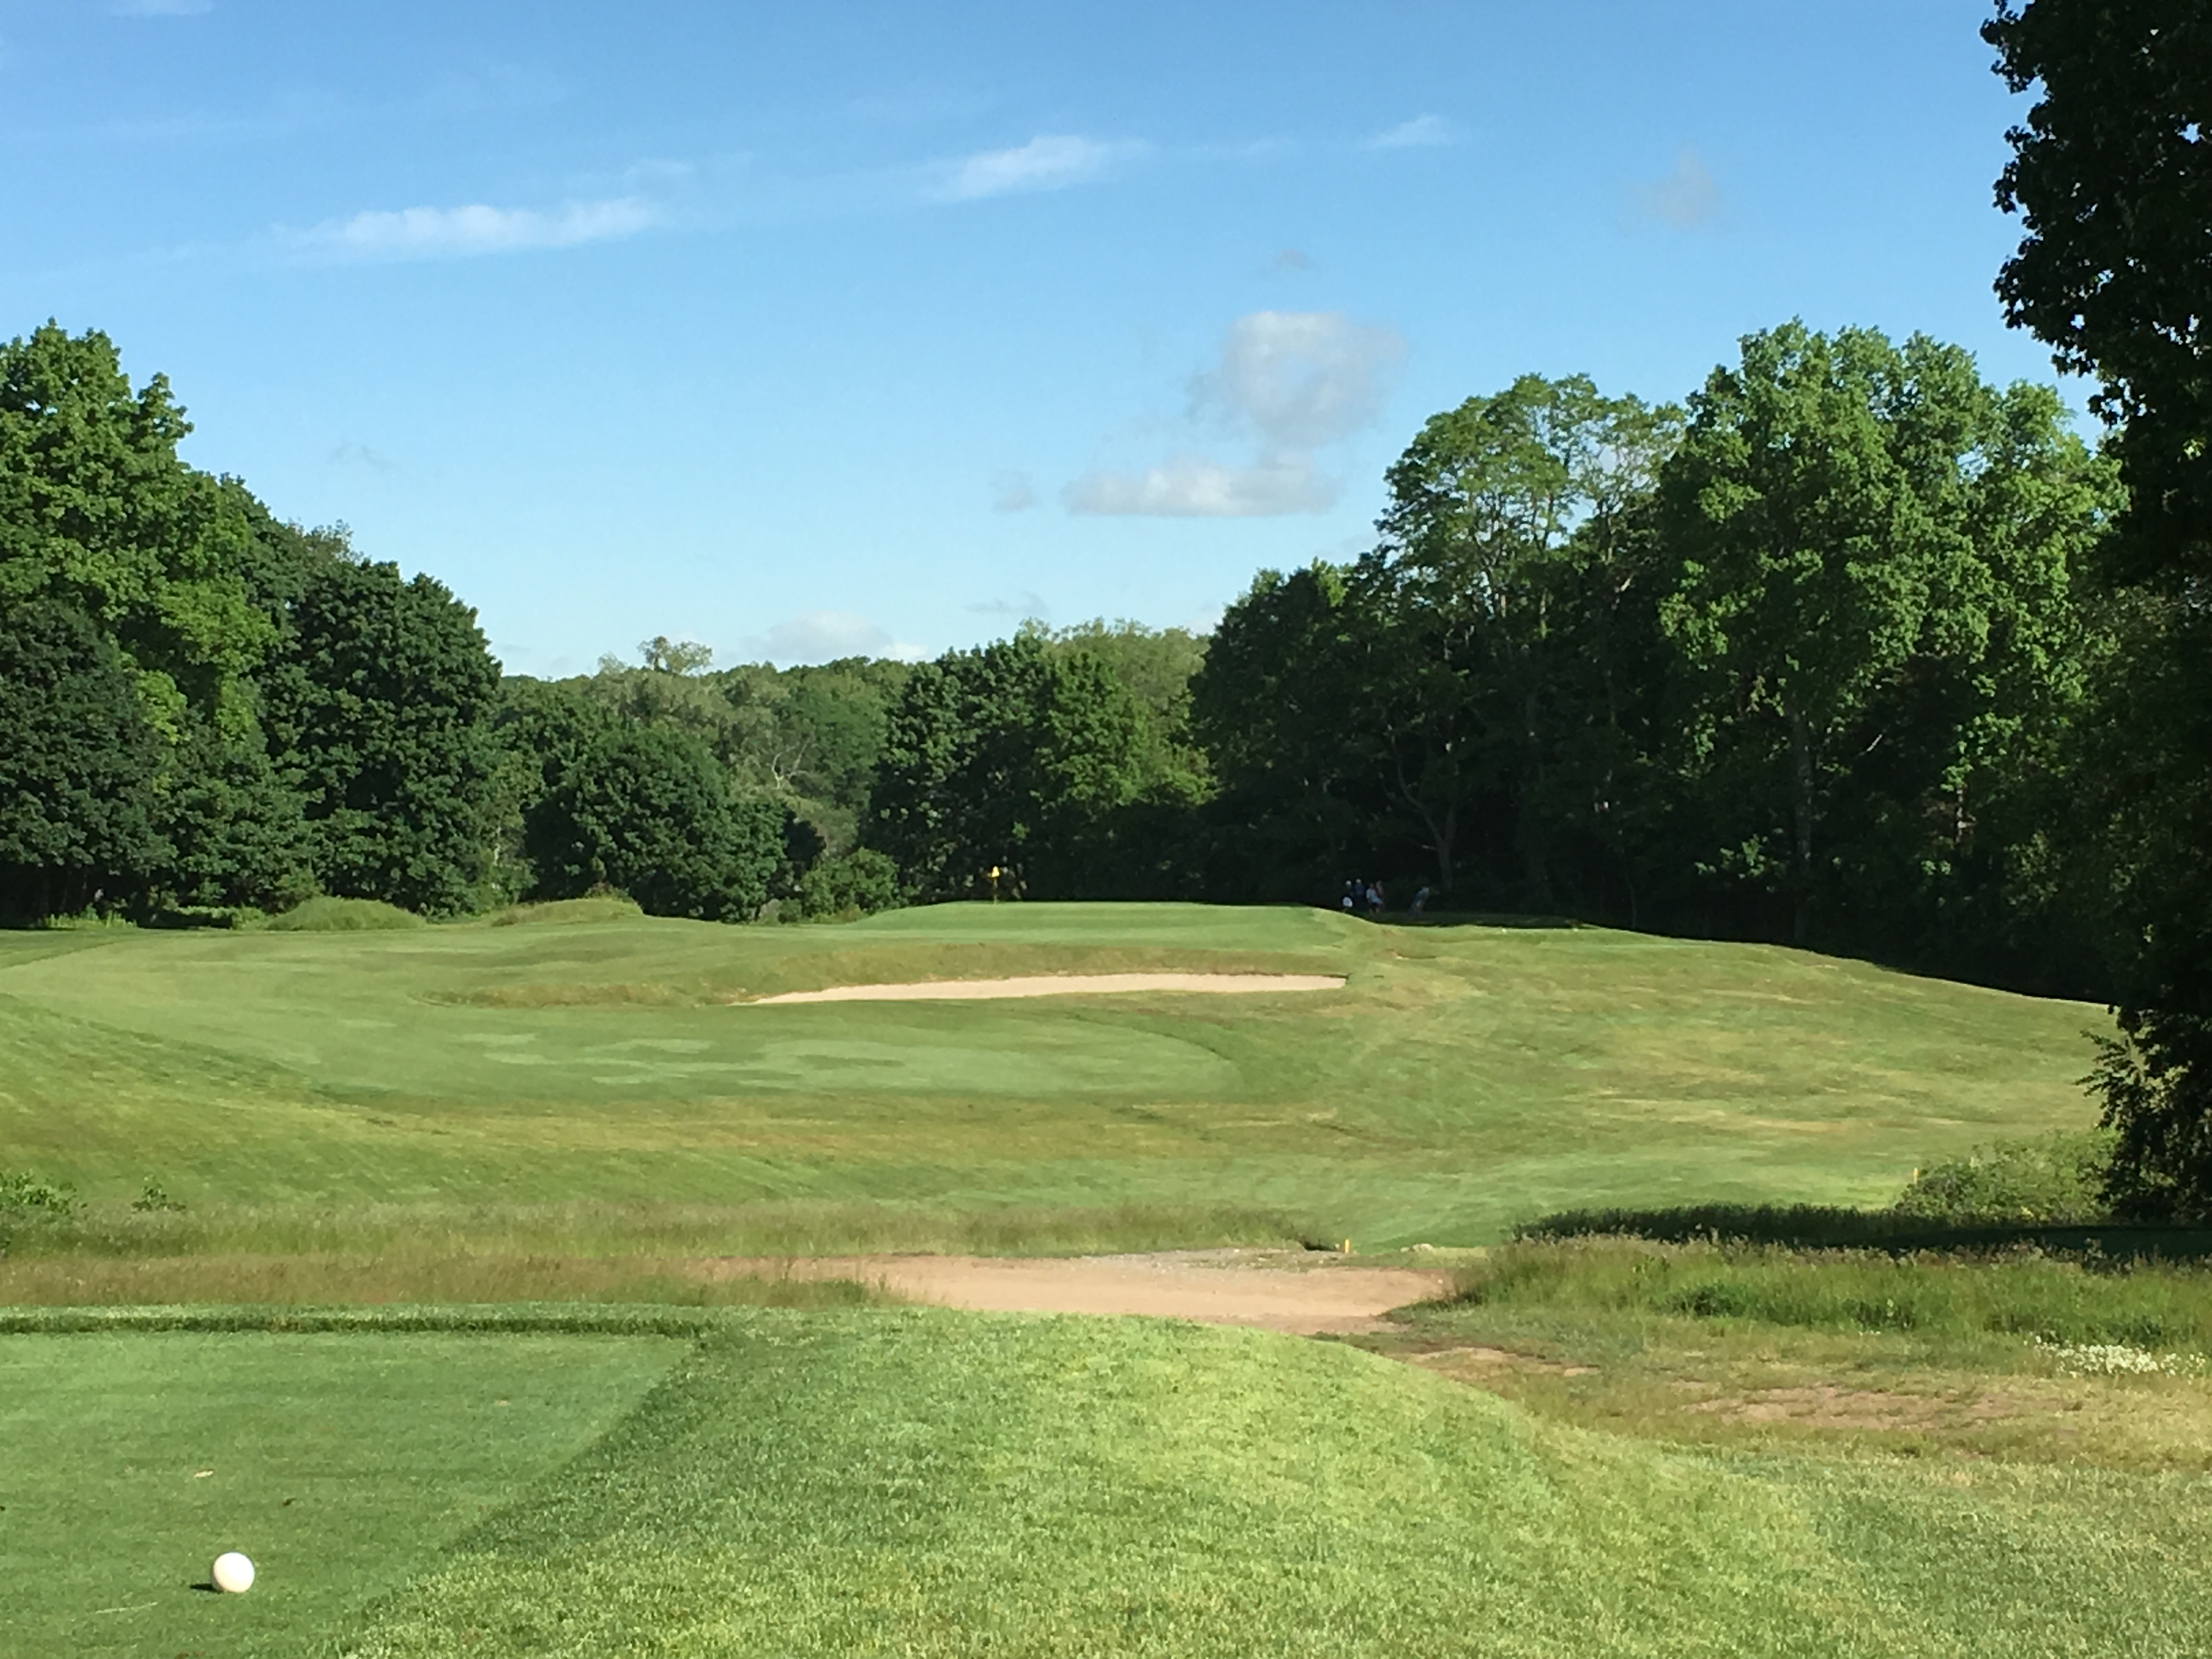 #3 - Par 3 - From the tee of this stout one-shotter